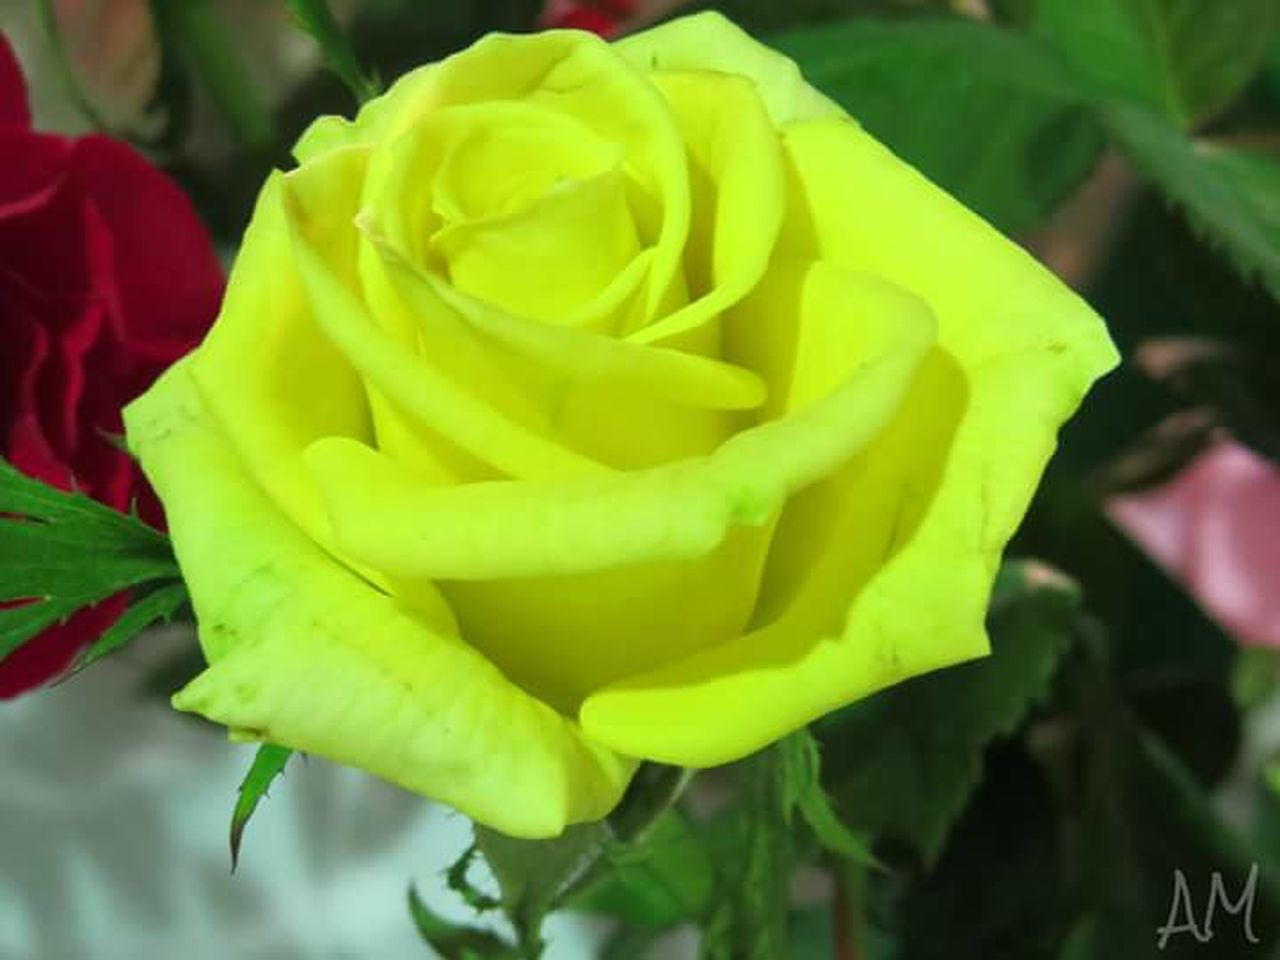 flower, nature, beauty in nature, growth, fragility, petal, plant, freshness, rose - flower, flower head, botany, springtime, green color, outdoors, yellow, close-up, no people, day, leaf, blooming